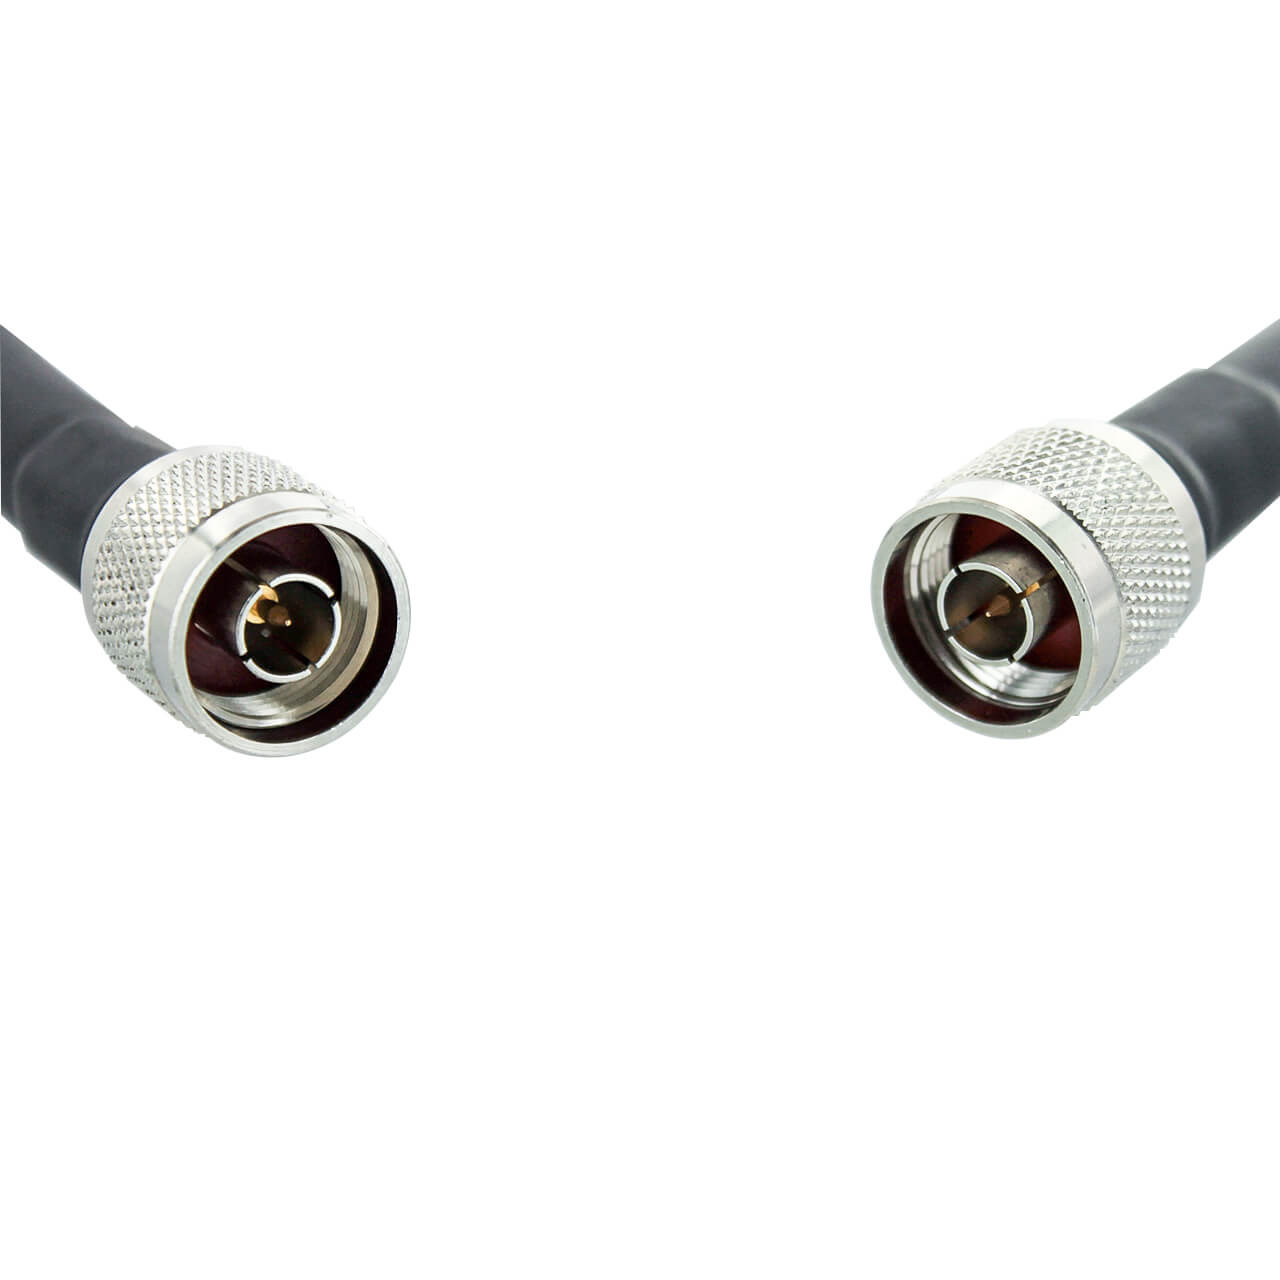 Bolton 400 Low Loss Cable - N-Male to N-Male PE Black Jacket 20 ft